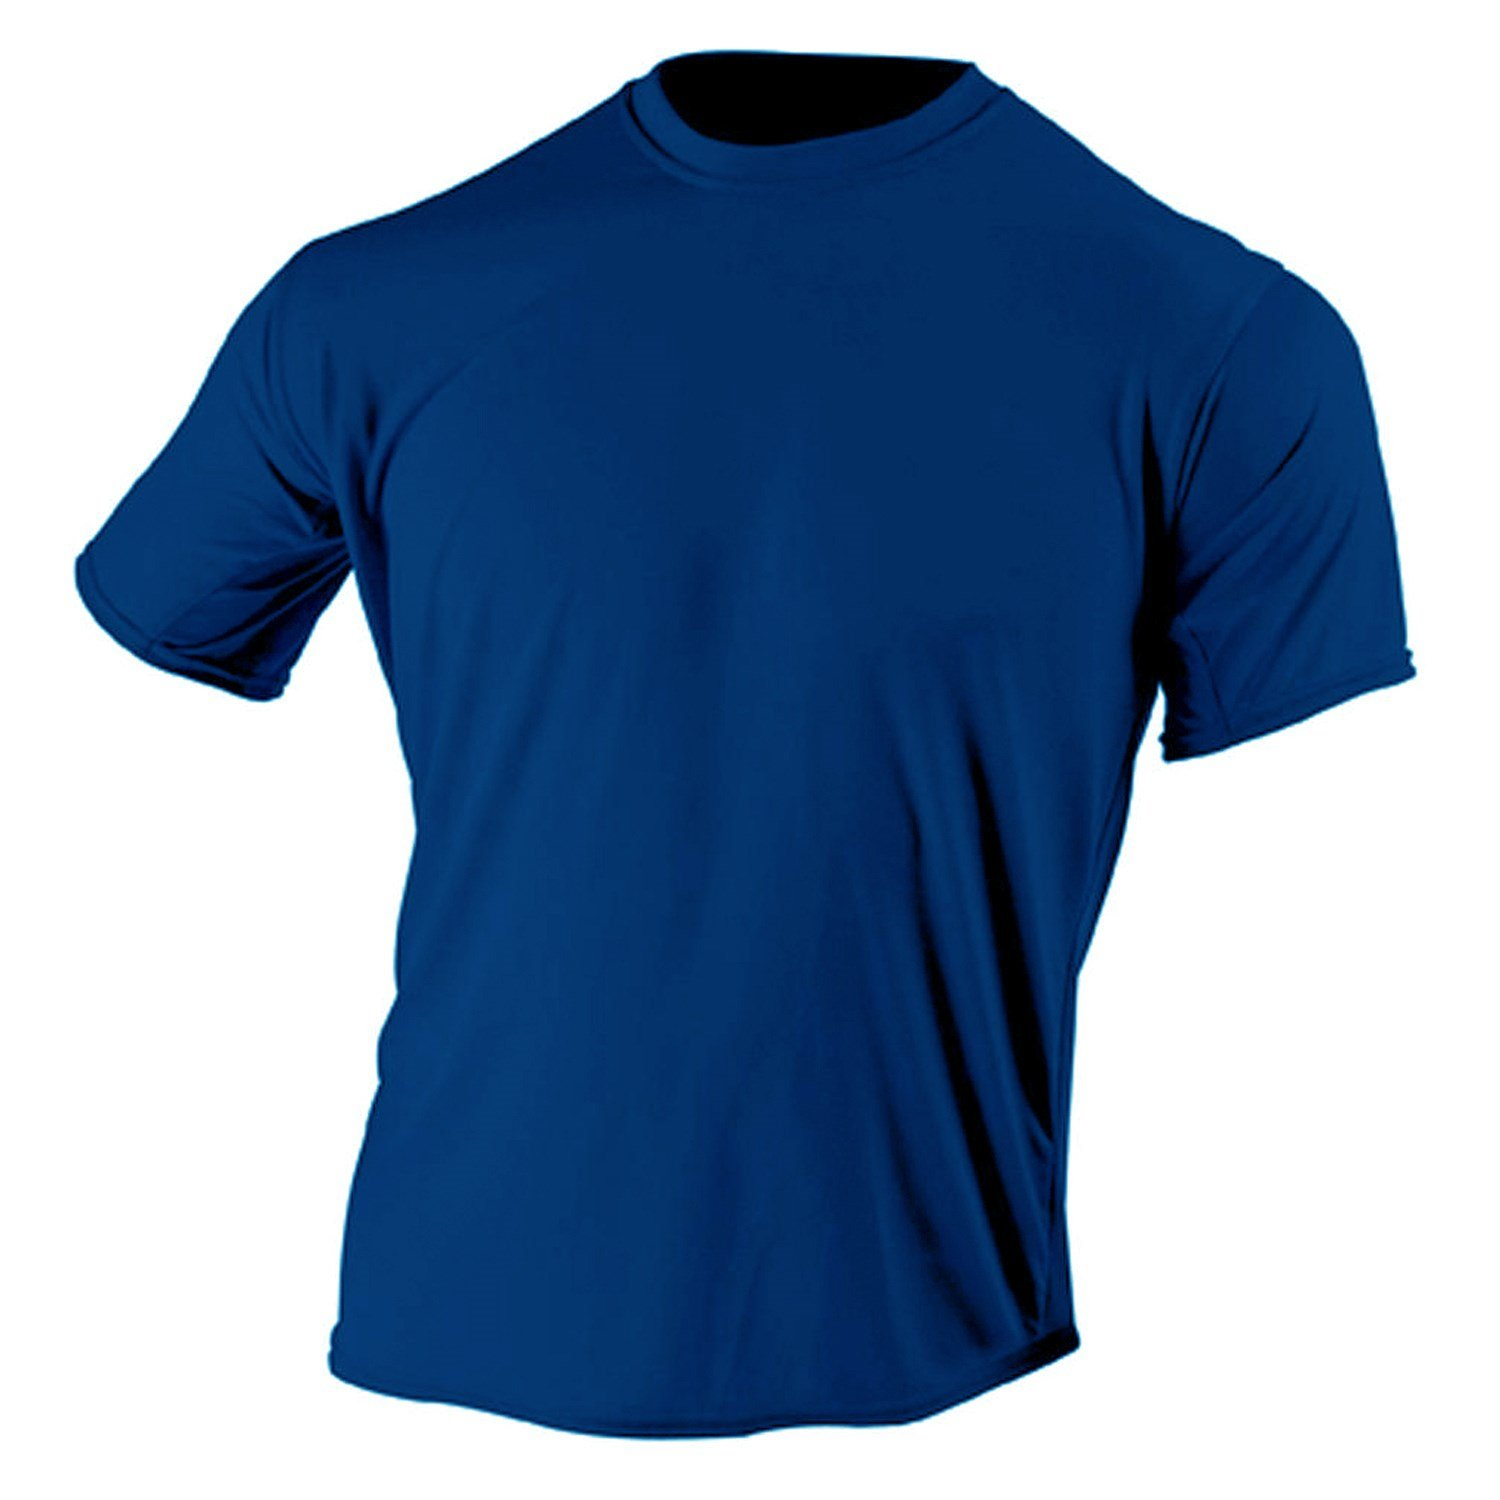 McDavid 905T Mens Half Sleeve Referee Cutcrew T Shirt Royal XXXL [Misc.]